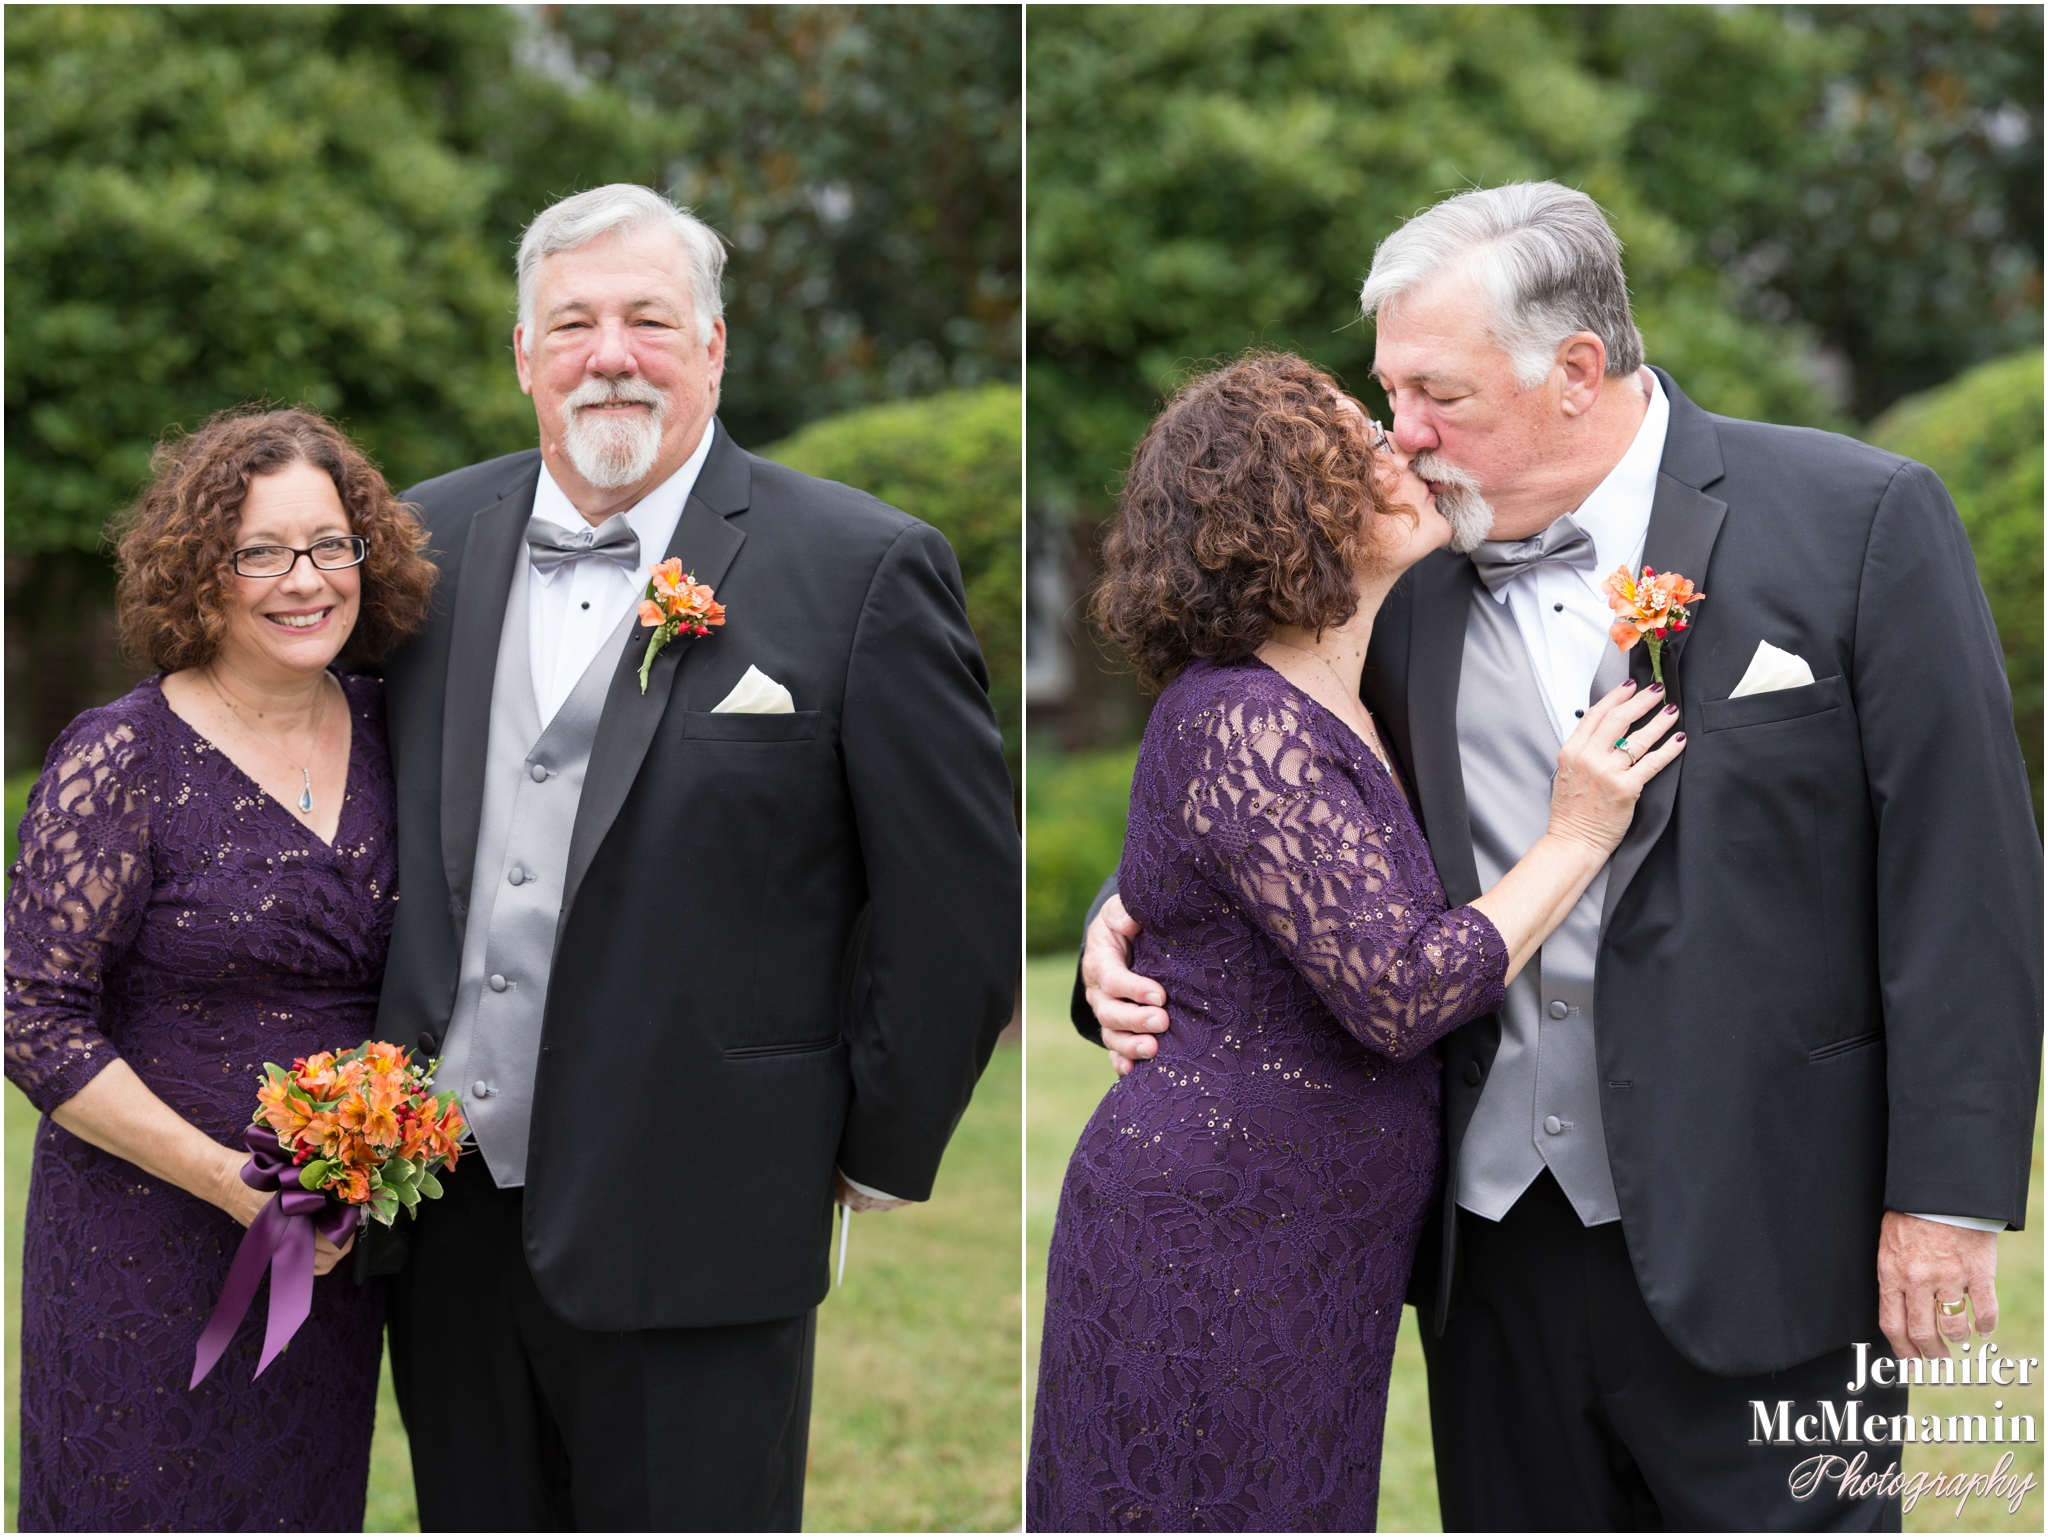 025-HenningMiller_00873-0164_JenniferMcMenaminPhotography_Evergreen-Museum-And-Carriage-House_Evergreen-wedding_Baltimore-wedding-photographer_Baltimore-wedding-photography